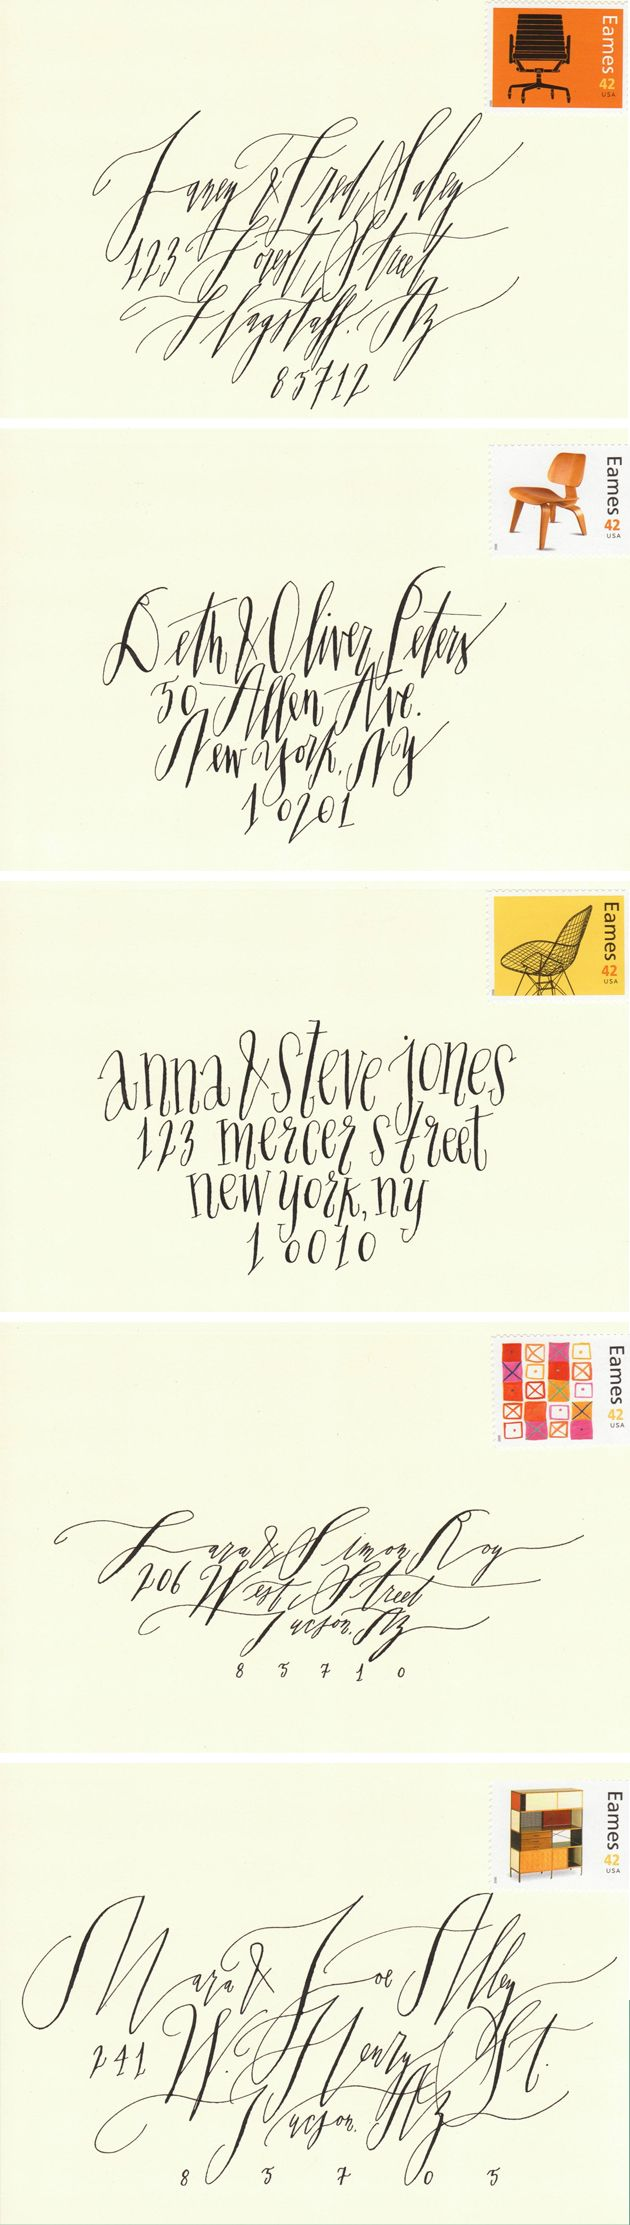 betsy dunlap, aka, coolest calligrapher in the whole wide world. if i could write like this i'd die happy.